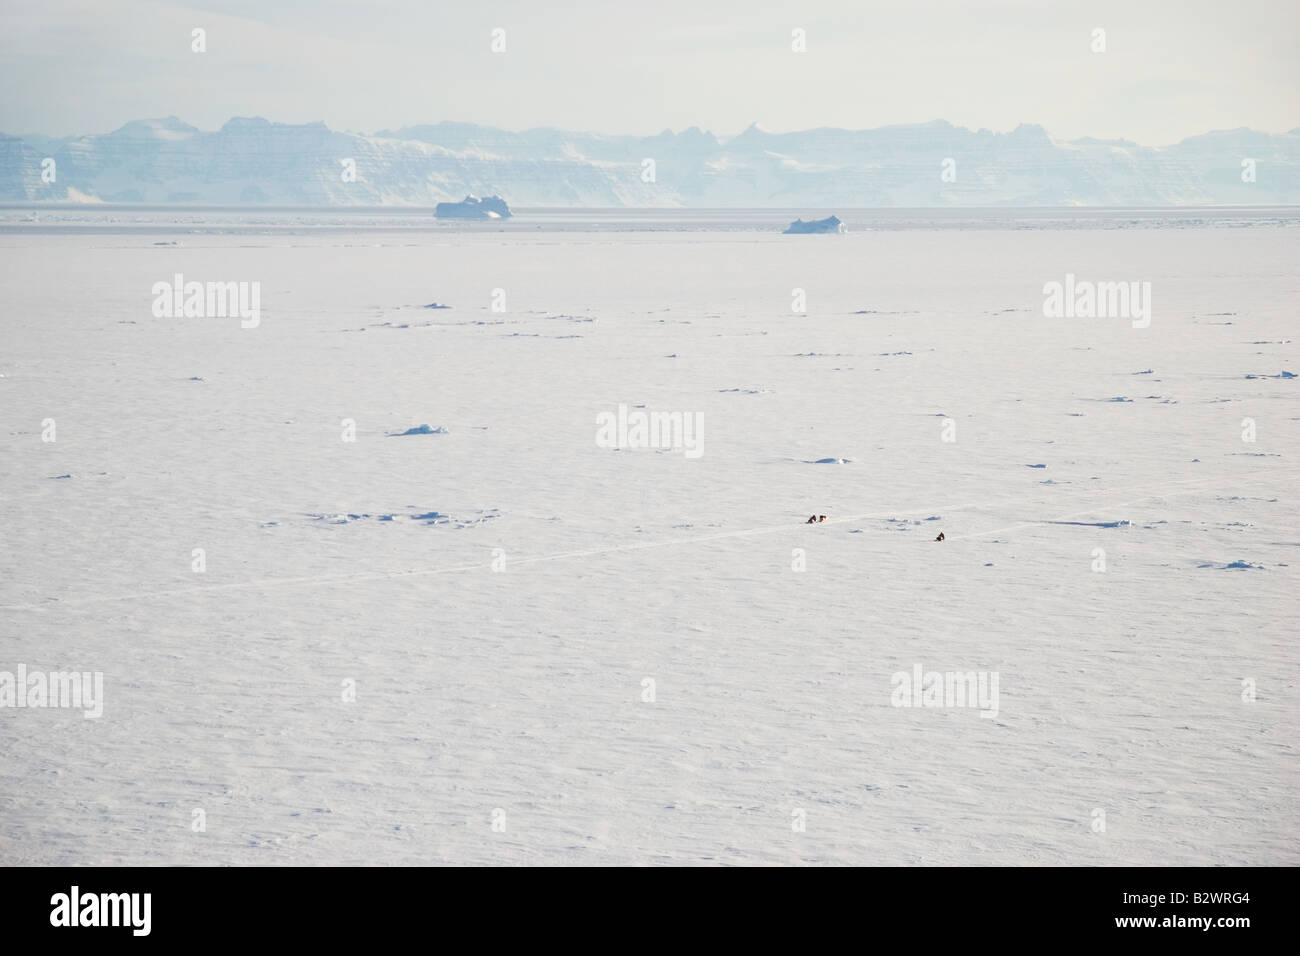 Snowmobiles being driven across the frozen sea ice of Scoresbysund fjord on the outskirts of Ittoqqortoormiit, East - Stock Image